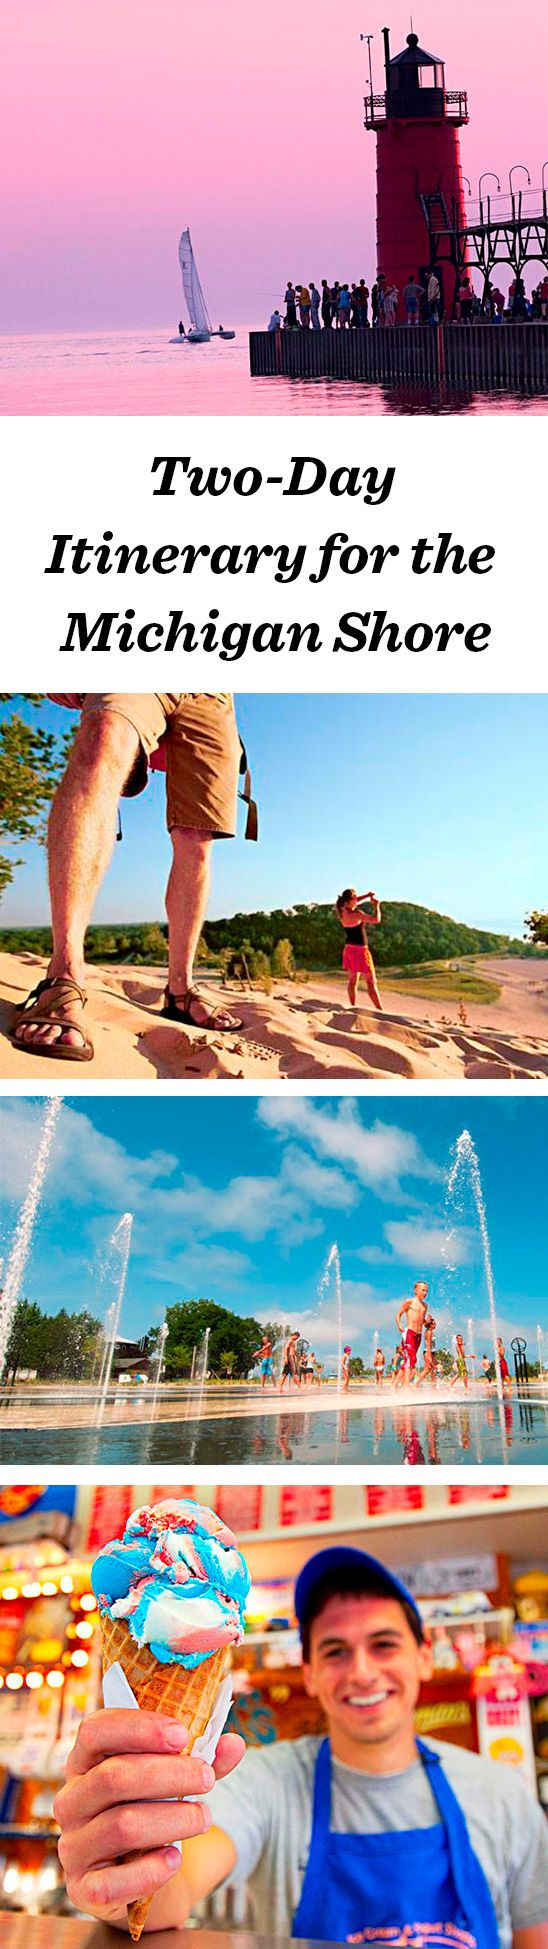 Sun, sand and sparkling water attract families to Lake Michigan's southwest shore towns between New Buffalo and Benton Harbor. Affordable weekend getaways await.  http://www.midwestliving.com/travel/michigan/two-day-getaway-on-lake-michigans-shore/